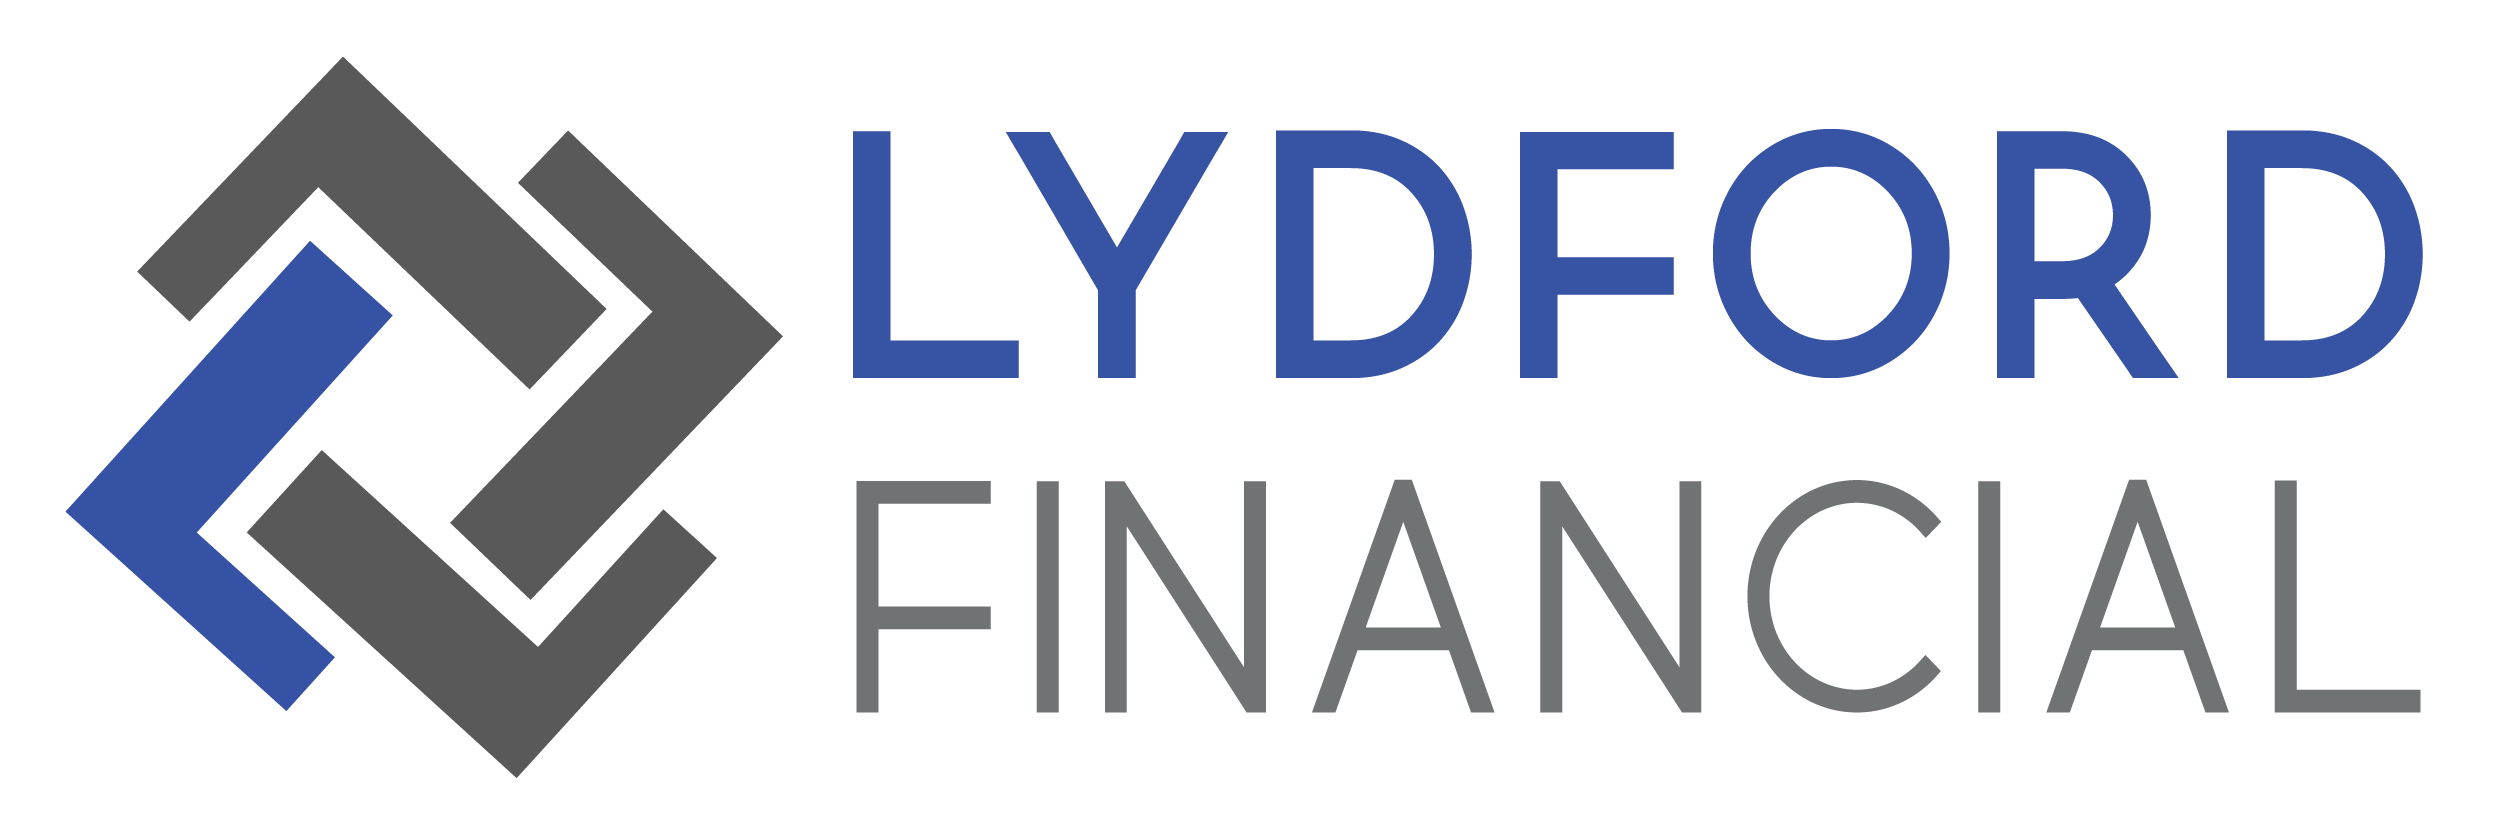 Lydford Financial